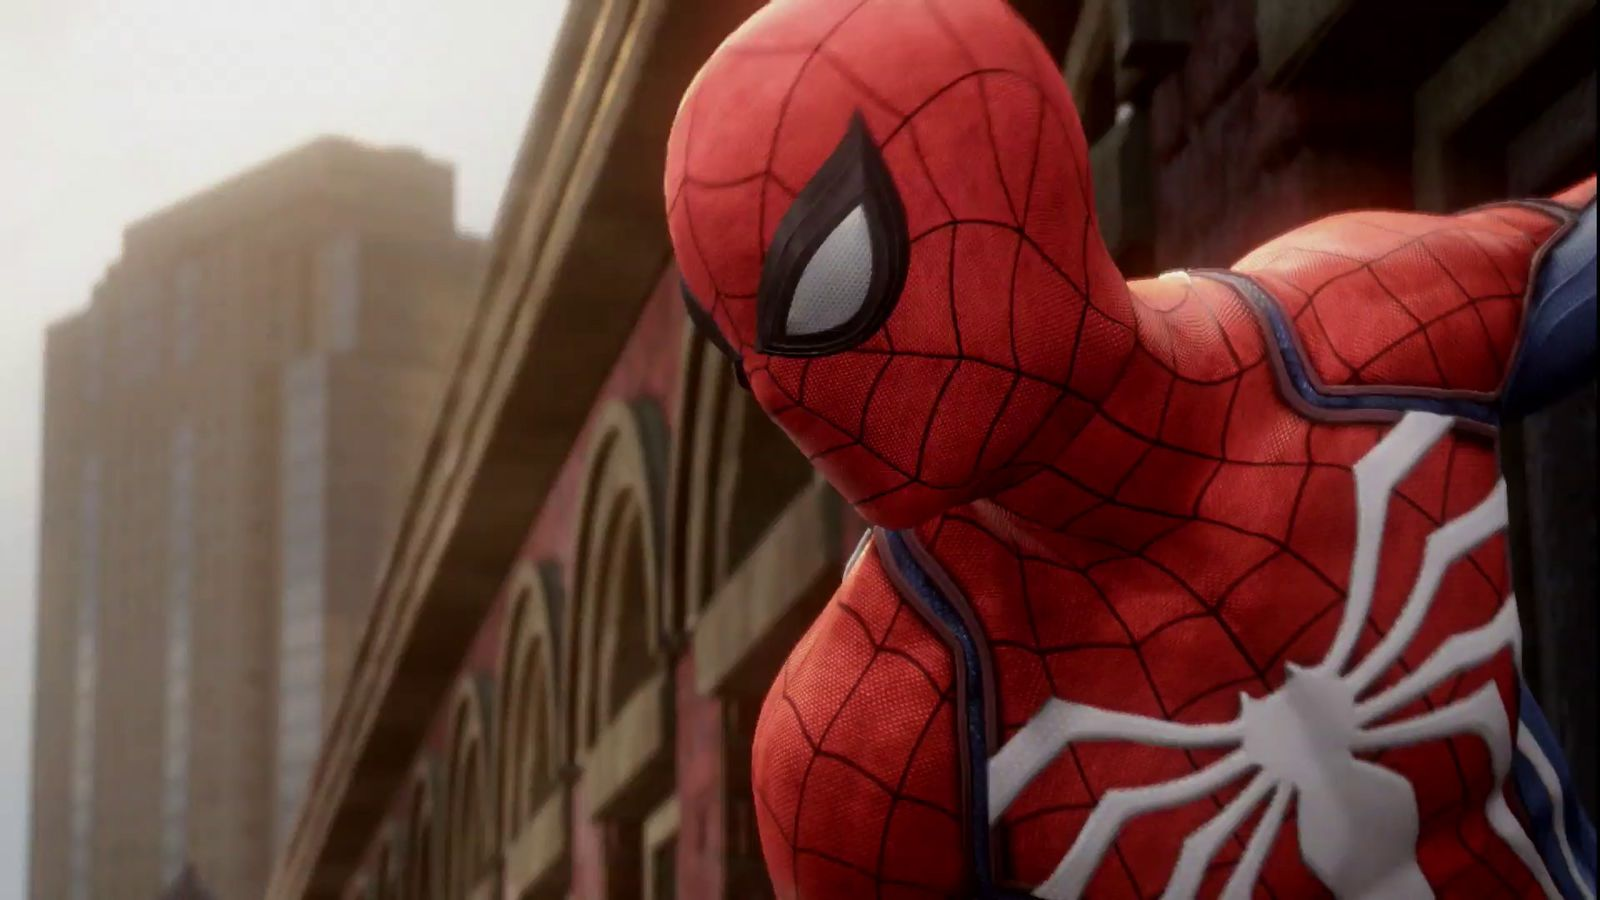 amazing spider-man | the bear sleuth